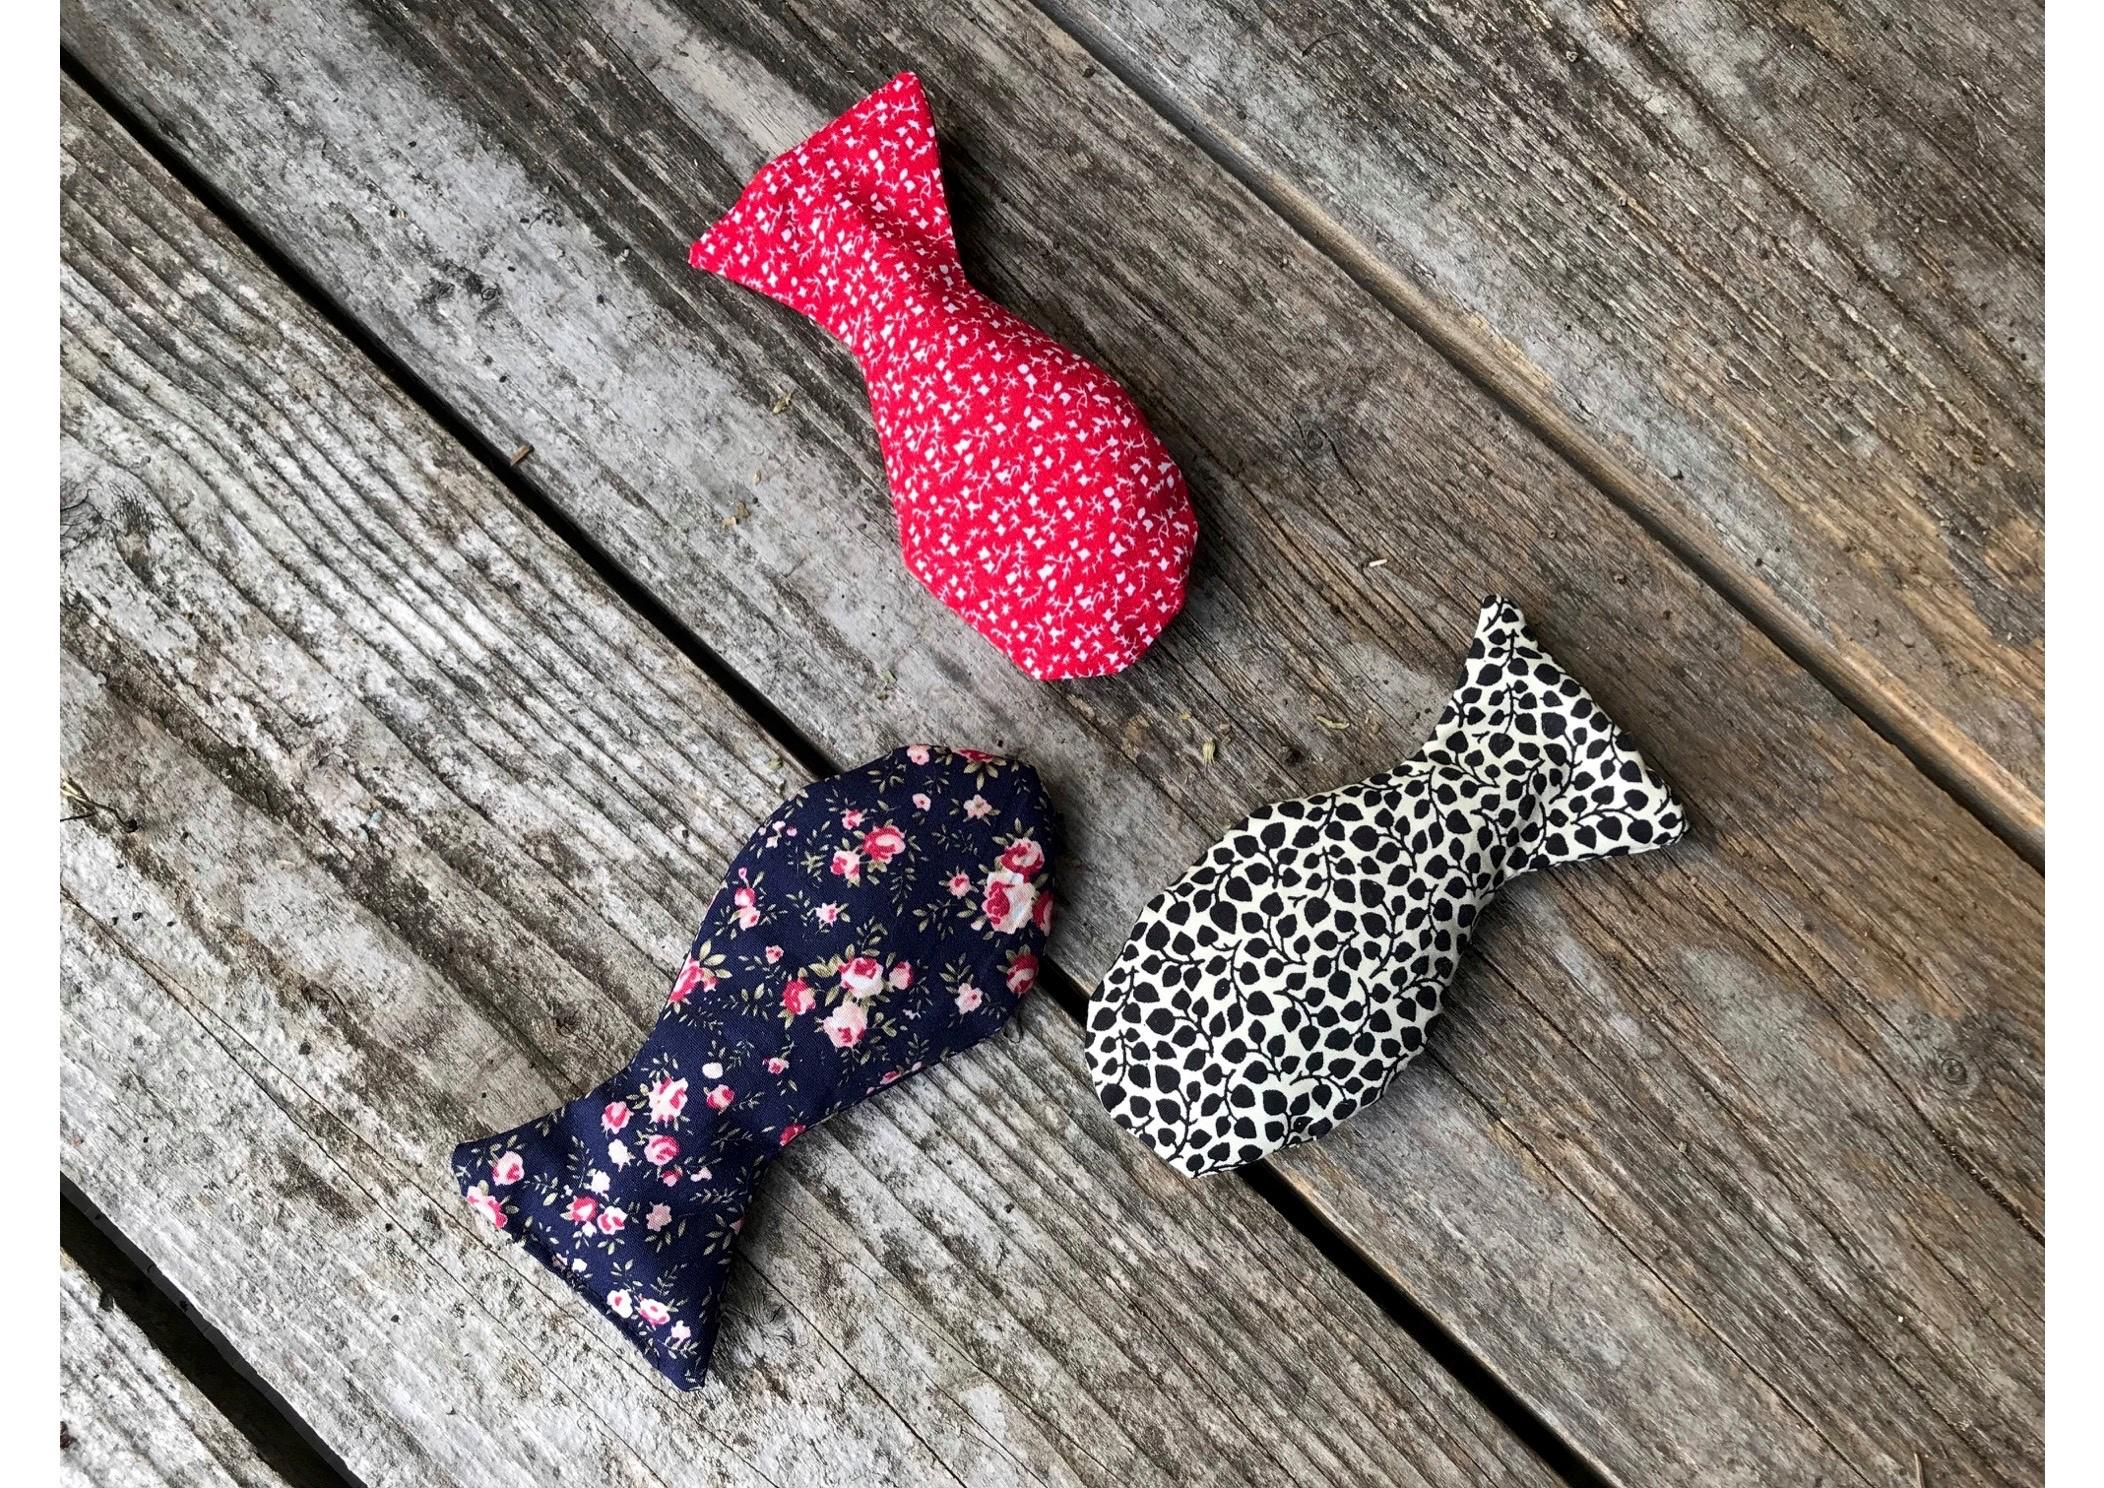 three catnip fish toys